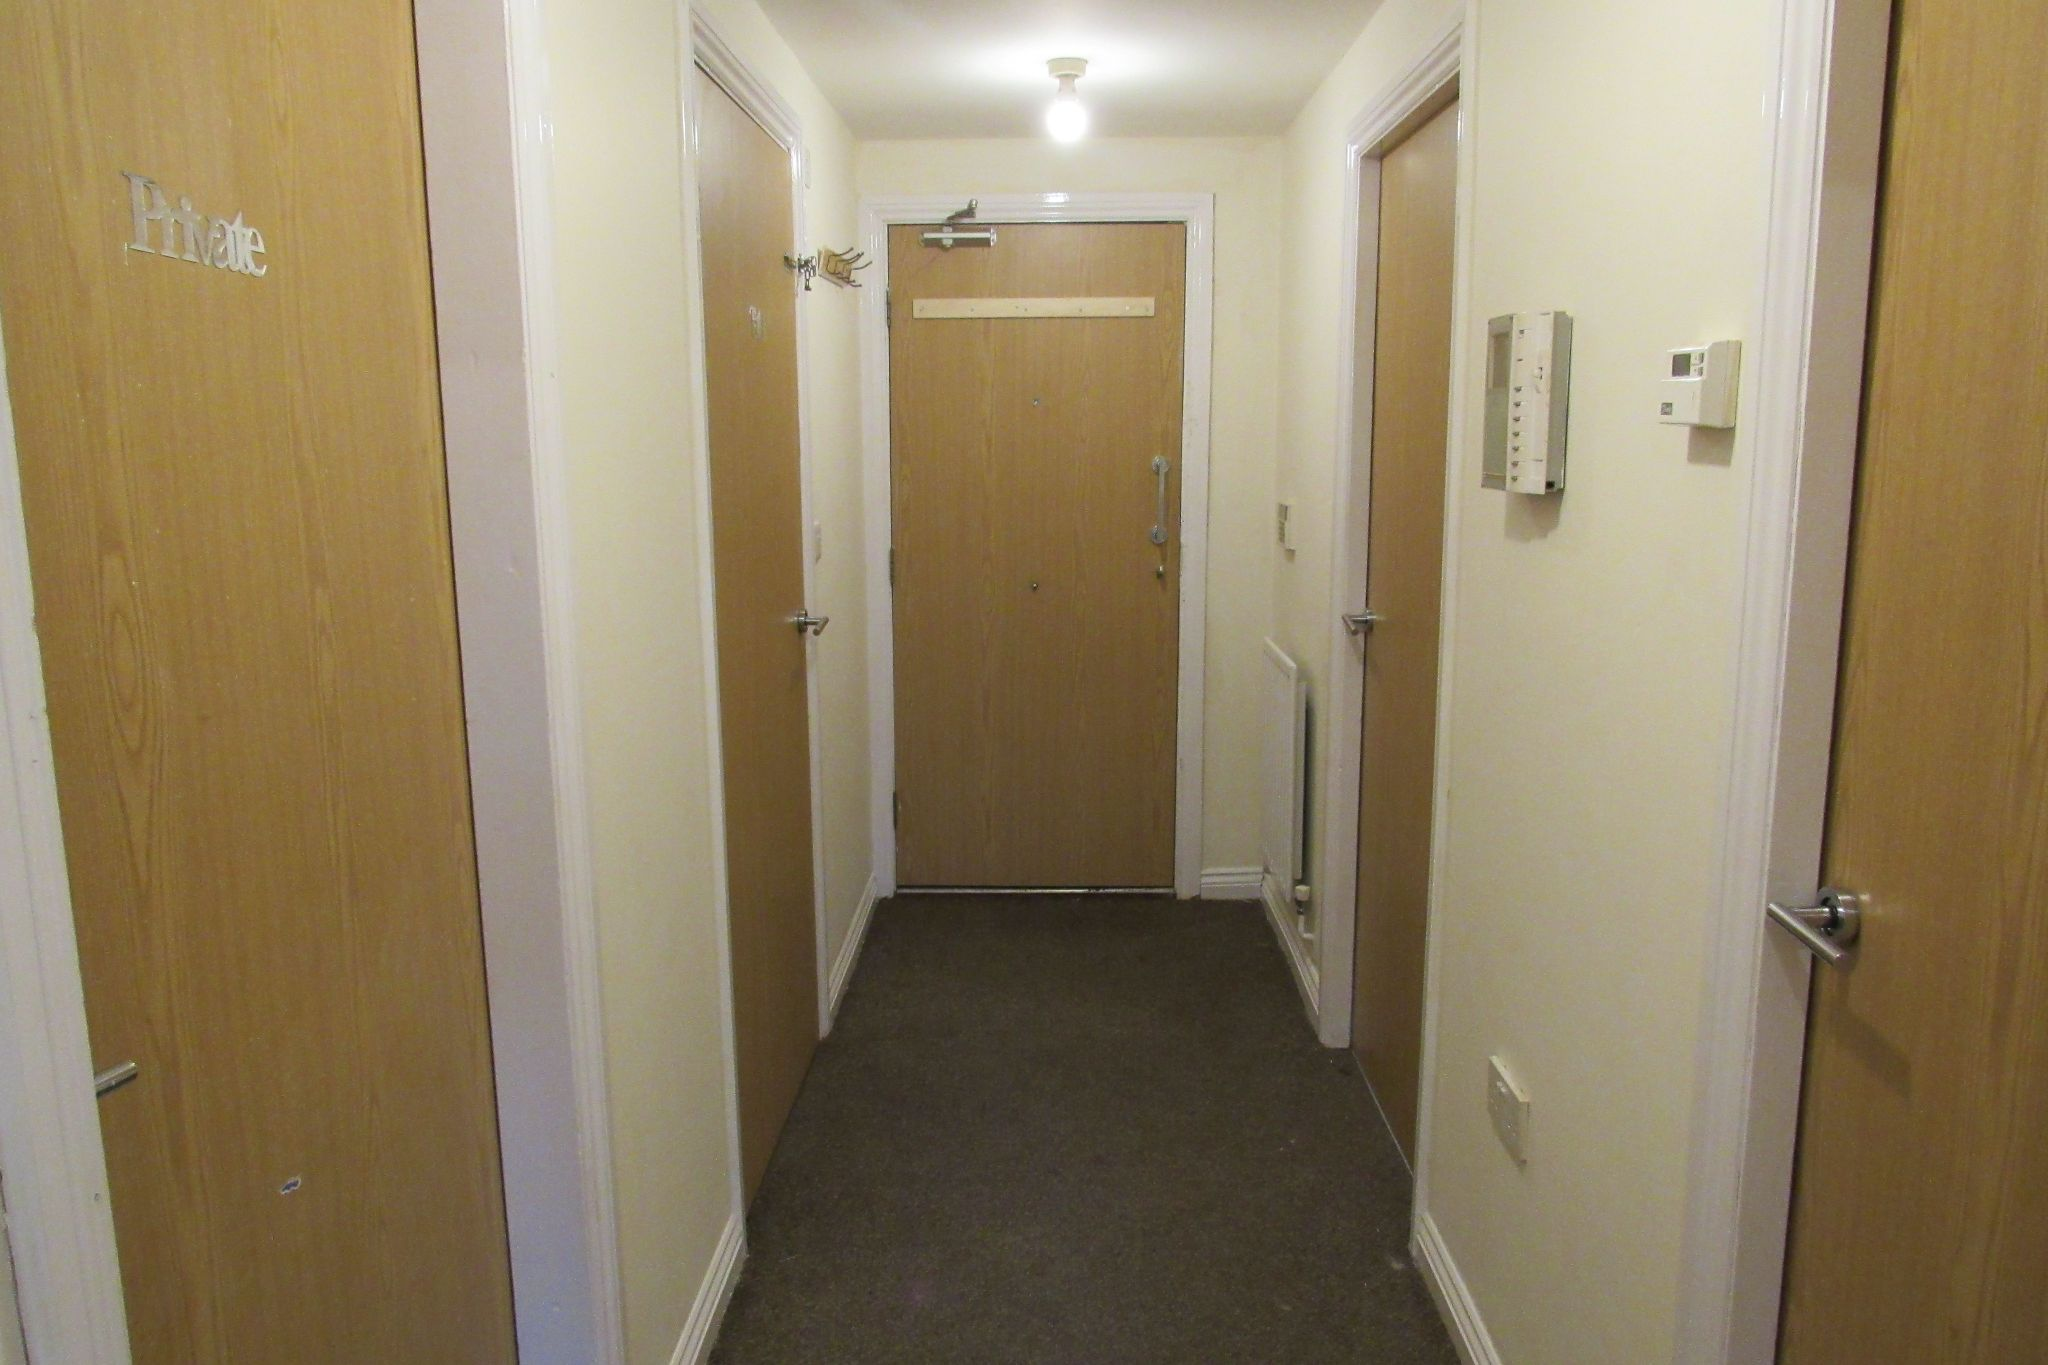 2 bedroom apartment flat/apartment SSTC in Manchester - Photograph 1.